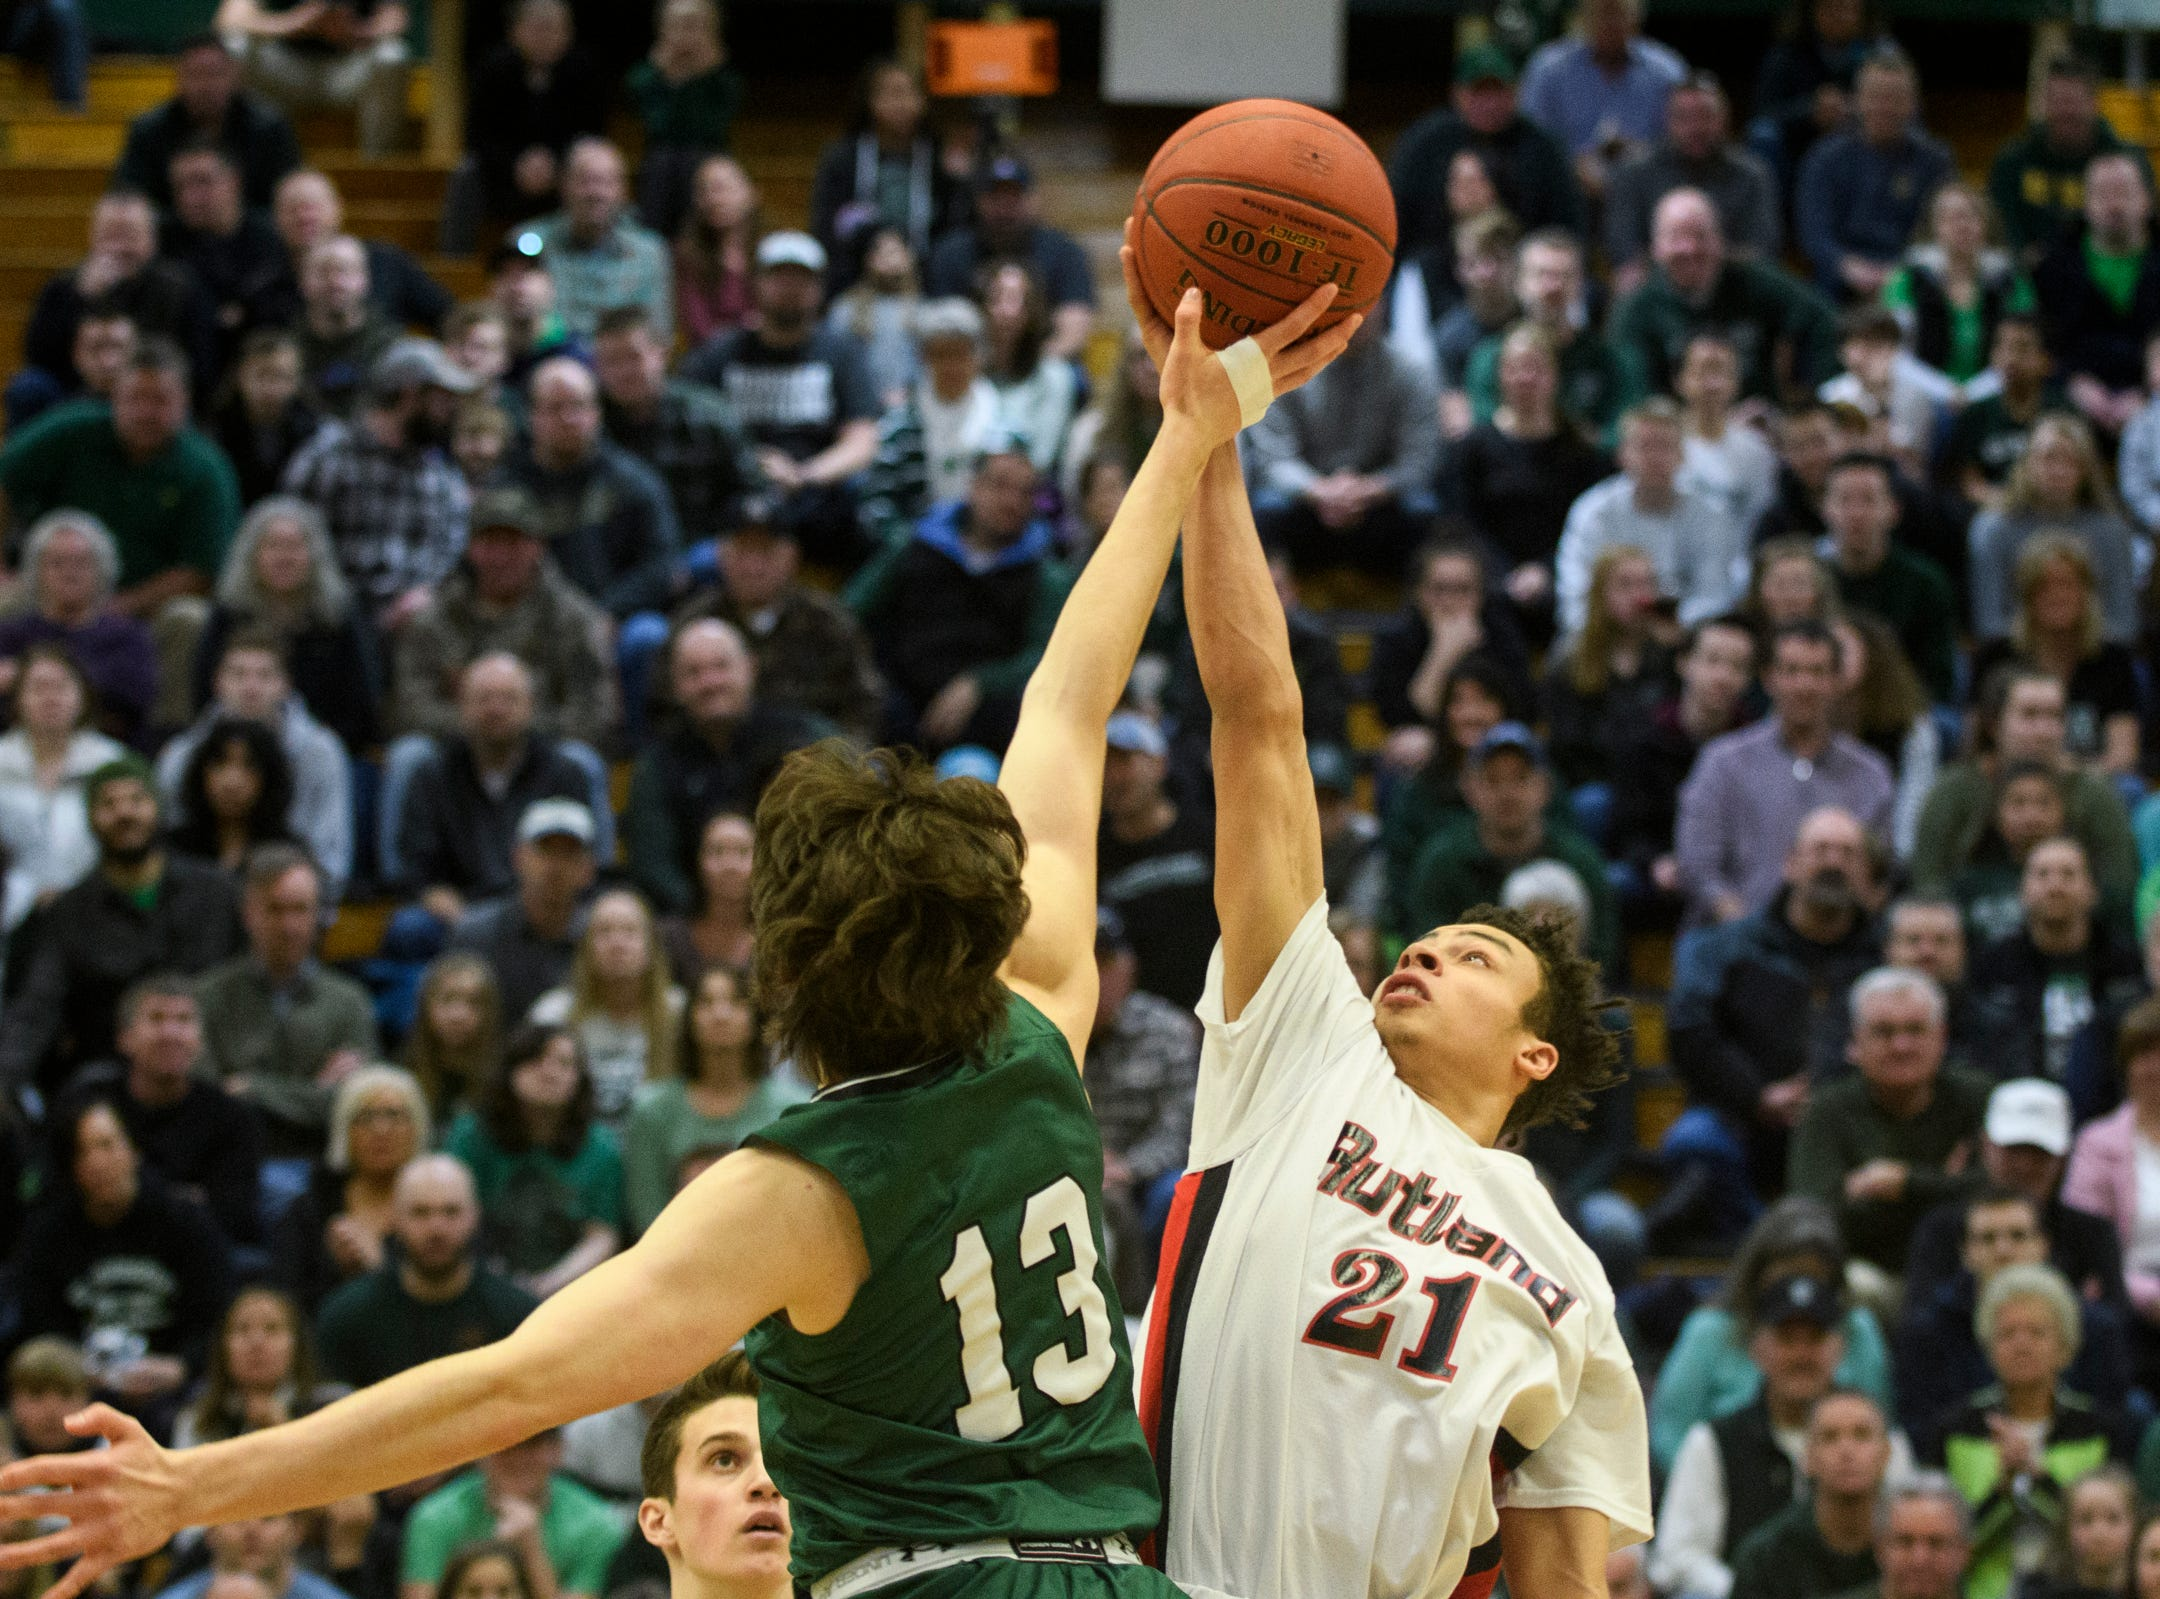 Rutland's Jamison Evans (21) and St. Johnsbury's Alex Carlisle (13) battle for the opening tip off during the DI boys basketball championship game between the St. Johnsbury Hilltoppers and the Rutland Raiders at Patrick Gym on Sunday afternoon March 17, 2019 in Burlington, Vermont.